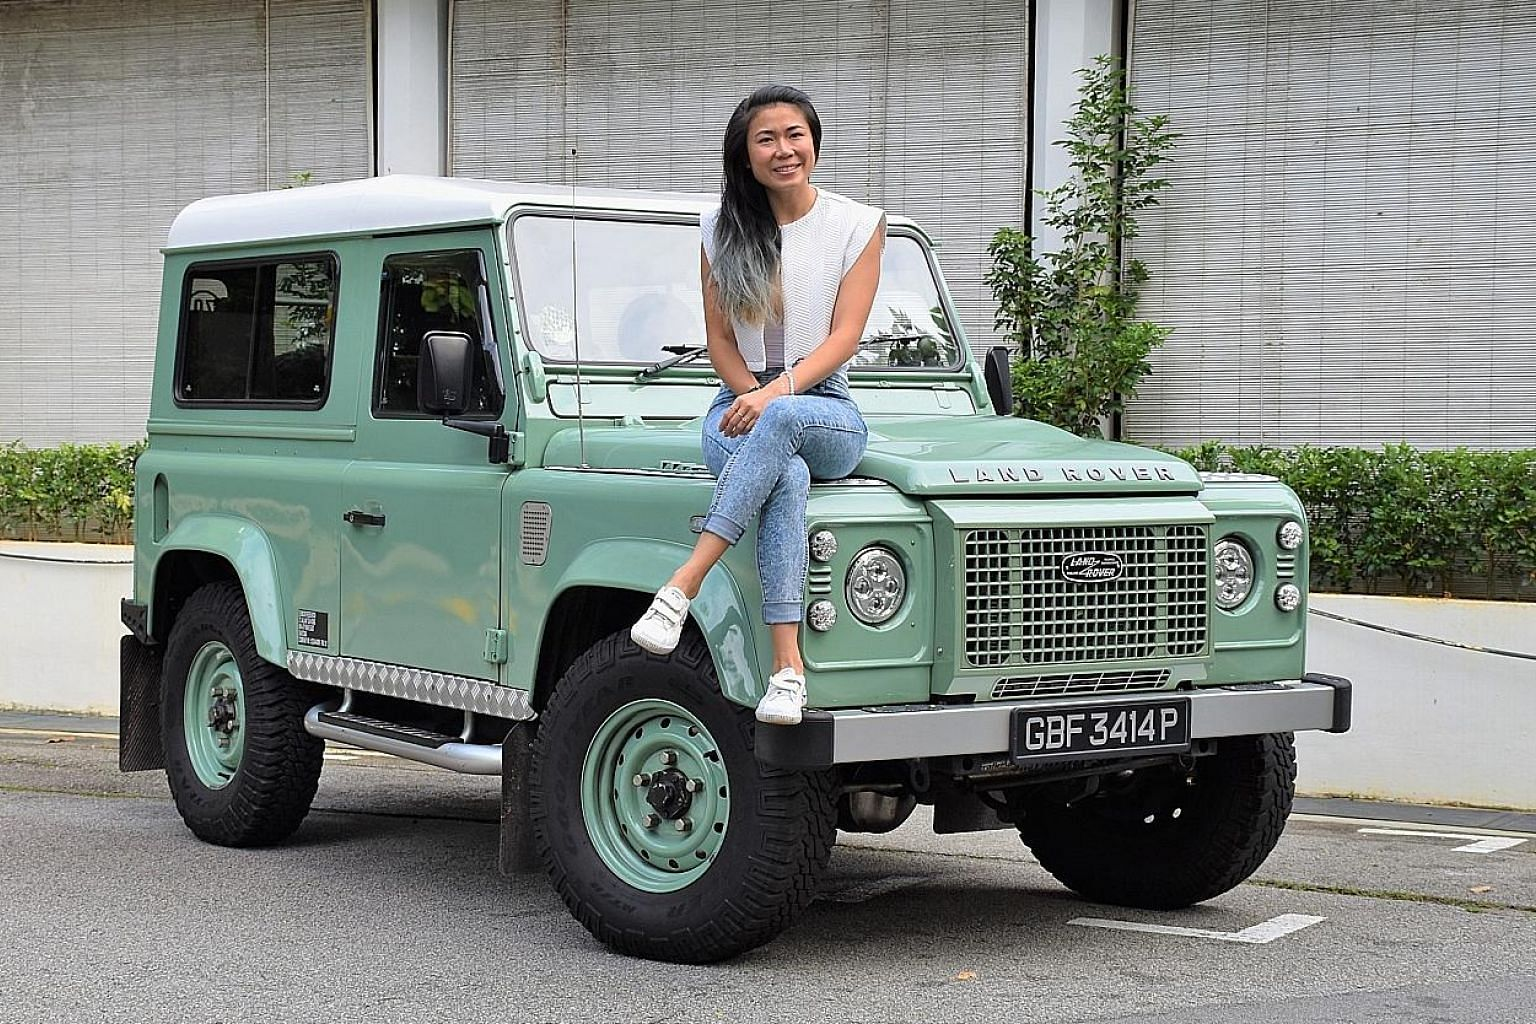 Ms Serena Darcel Chin bought her Land Rover Defender on online marketplace Carousell - where she also works as senior in-house legal counsel - for $42,000.